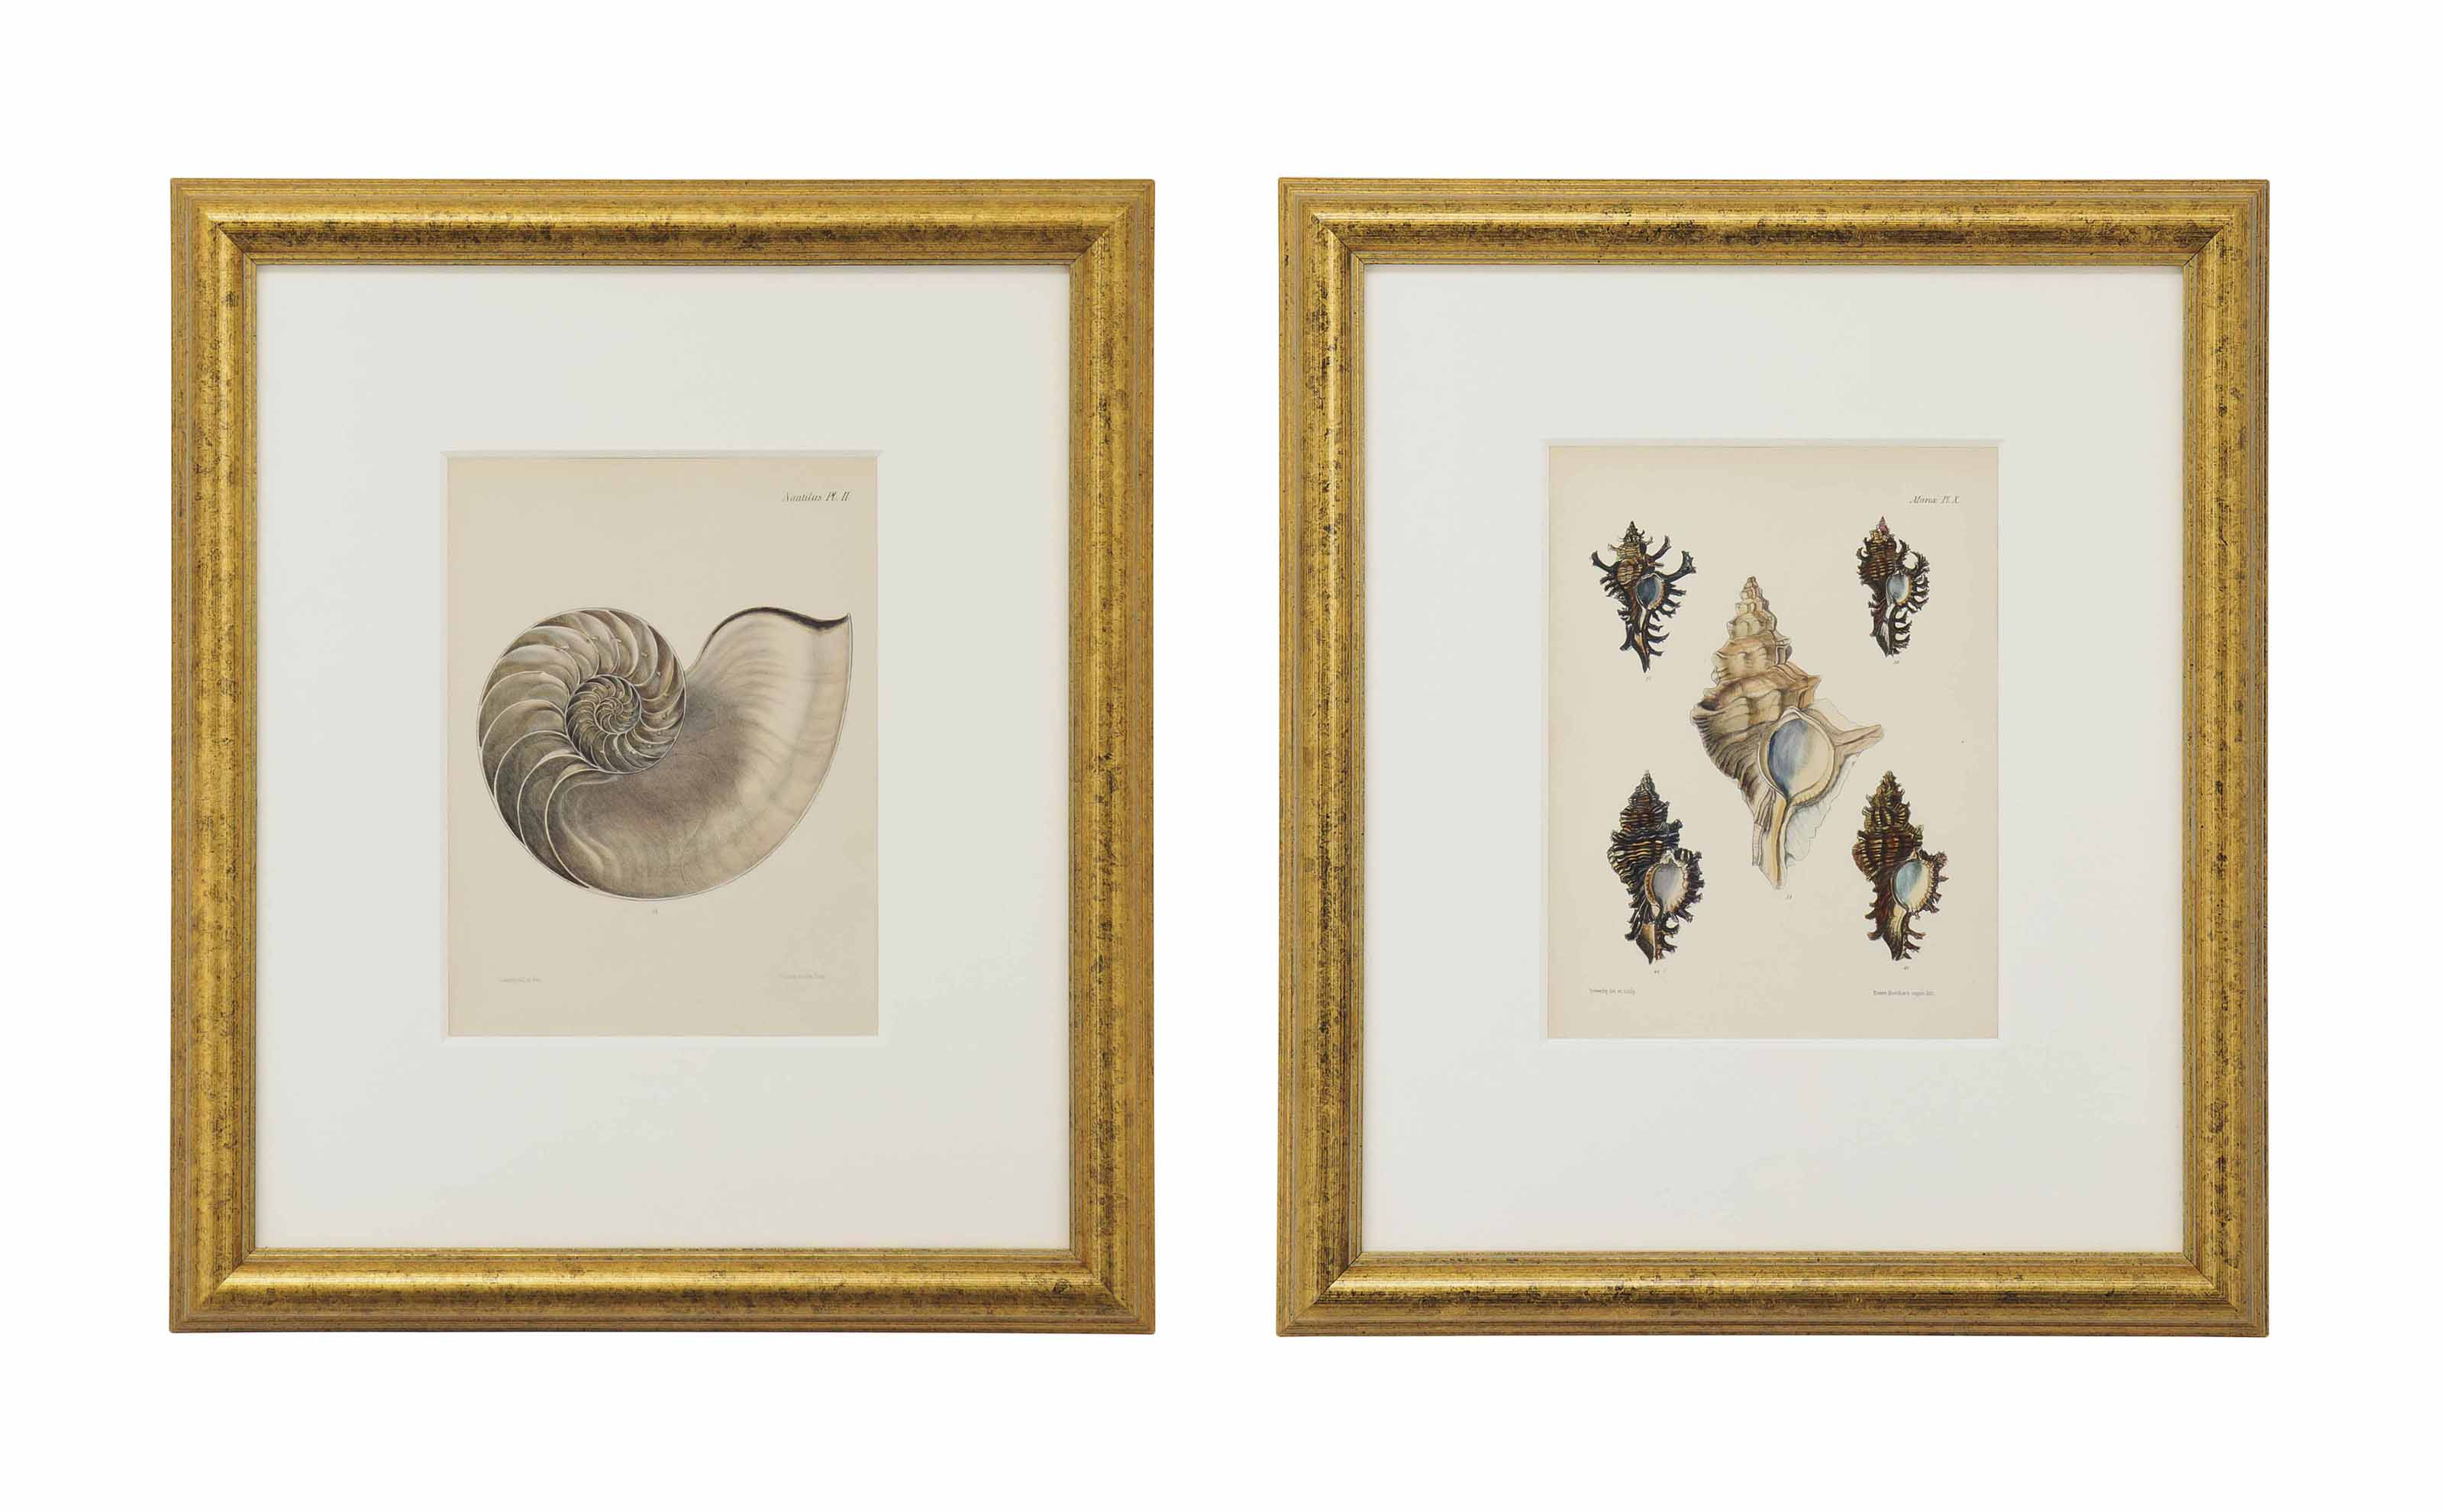 TWELVE HAND-COLOURED LITHOGRAPHS FROM CONCHOLOGIA ICONICA: ILLUSTRATIONS OF THE SHELLS OF MOLLUSCOUS ANIMALS